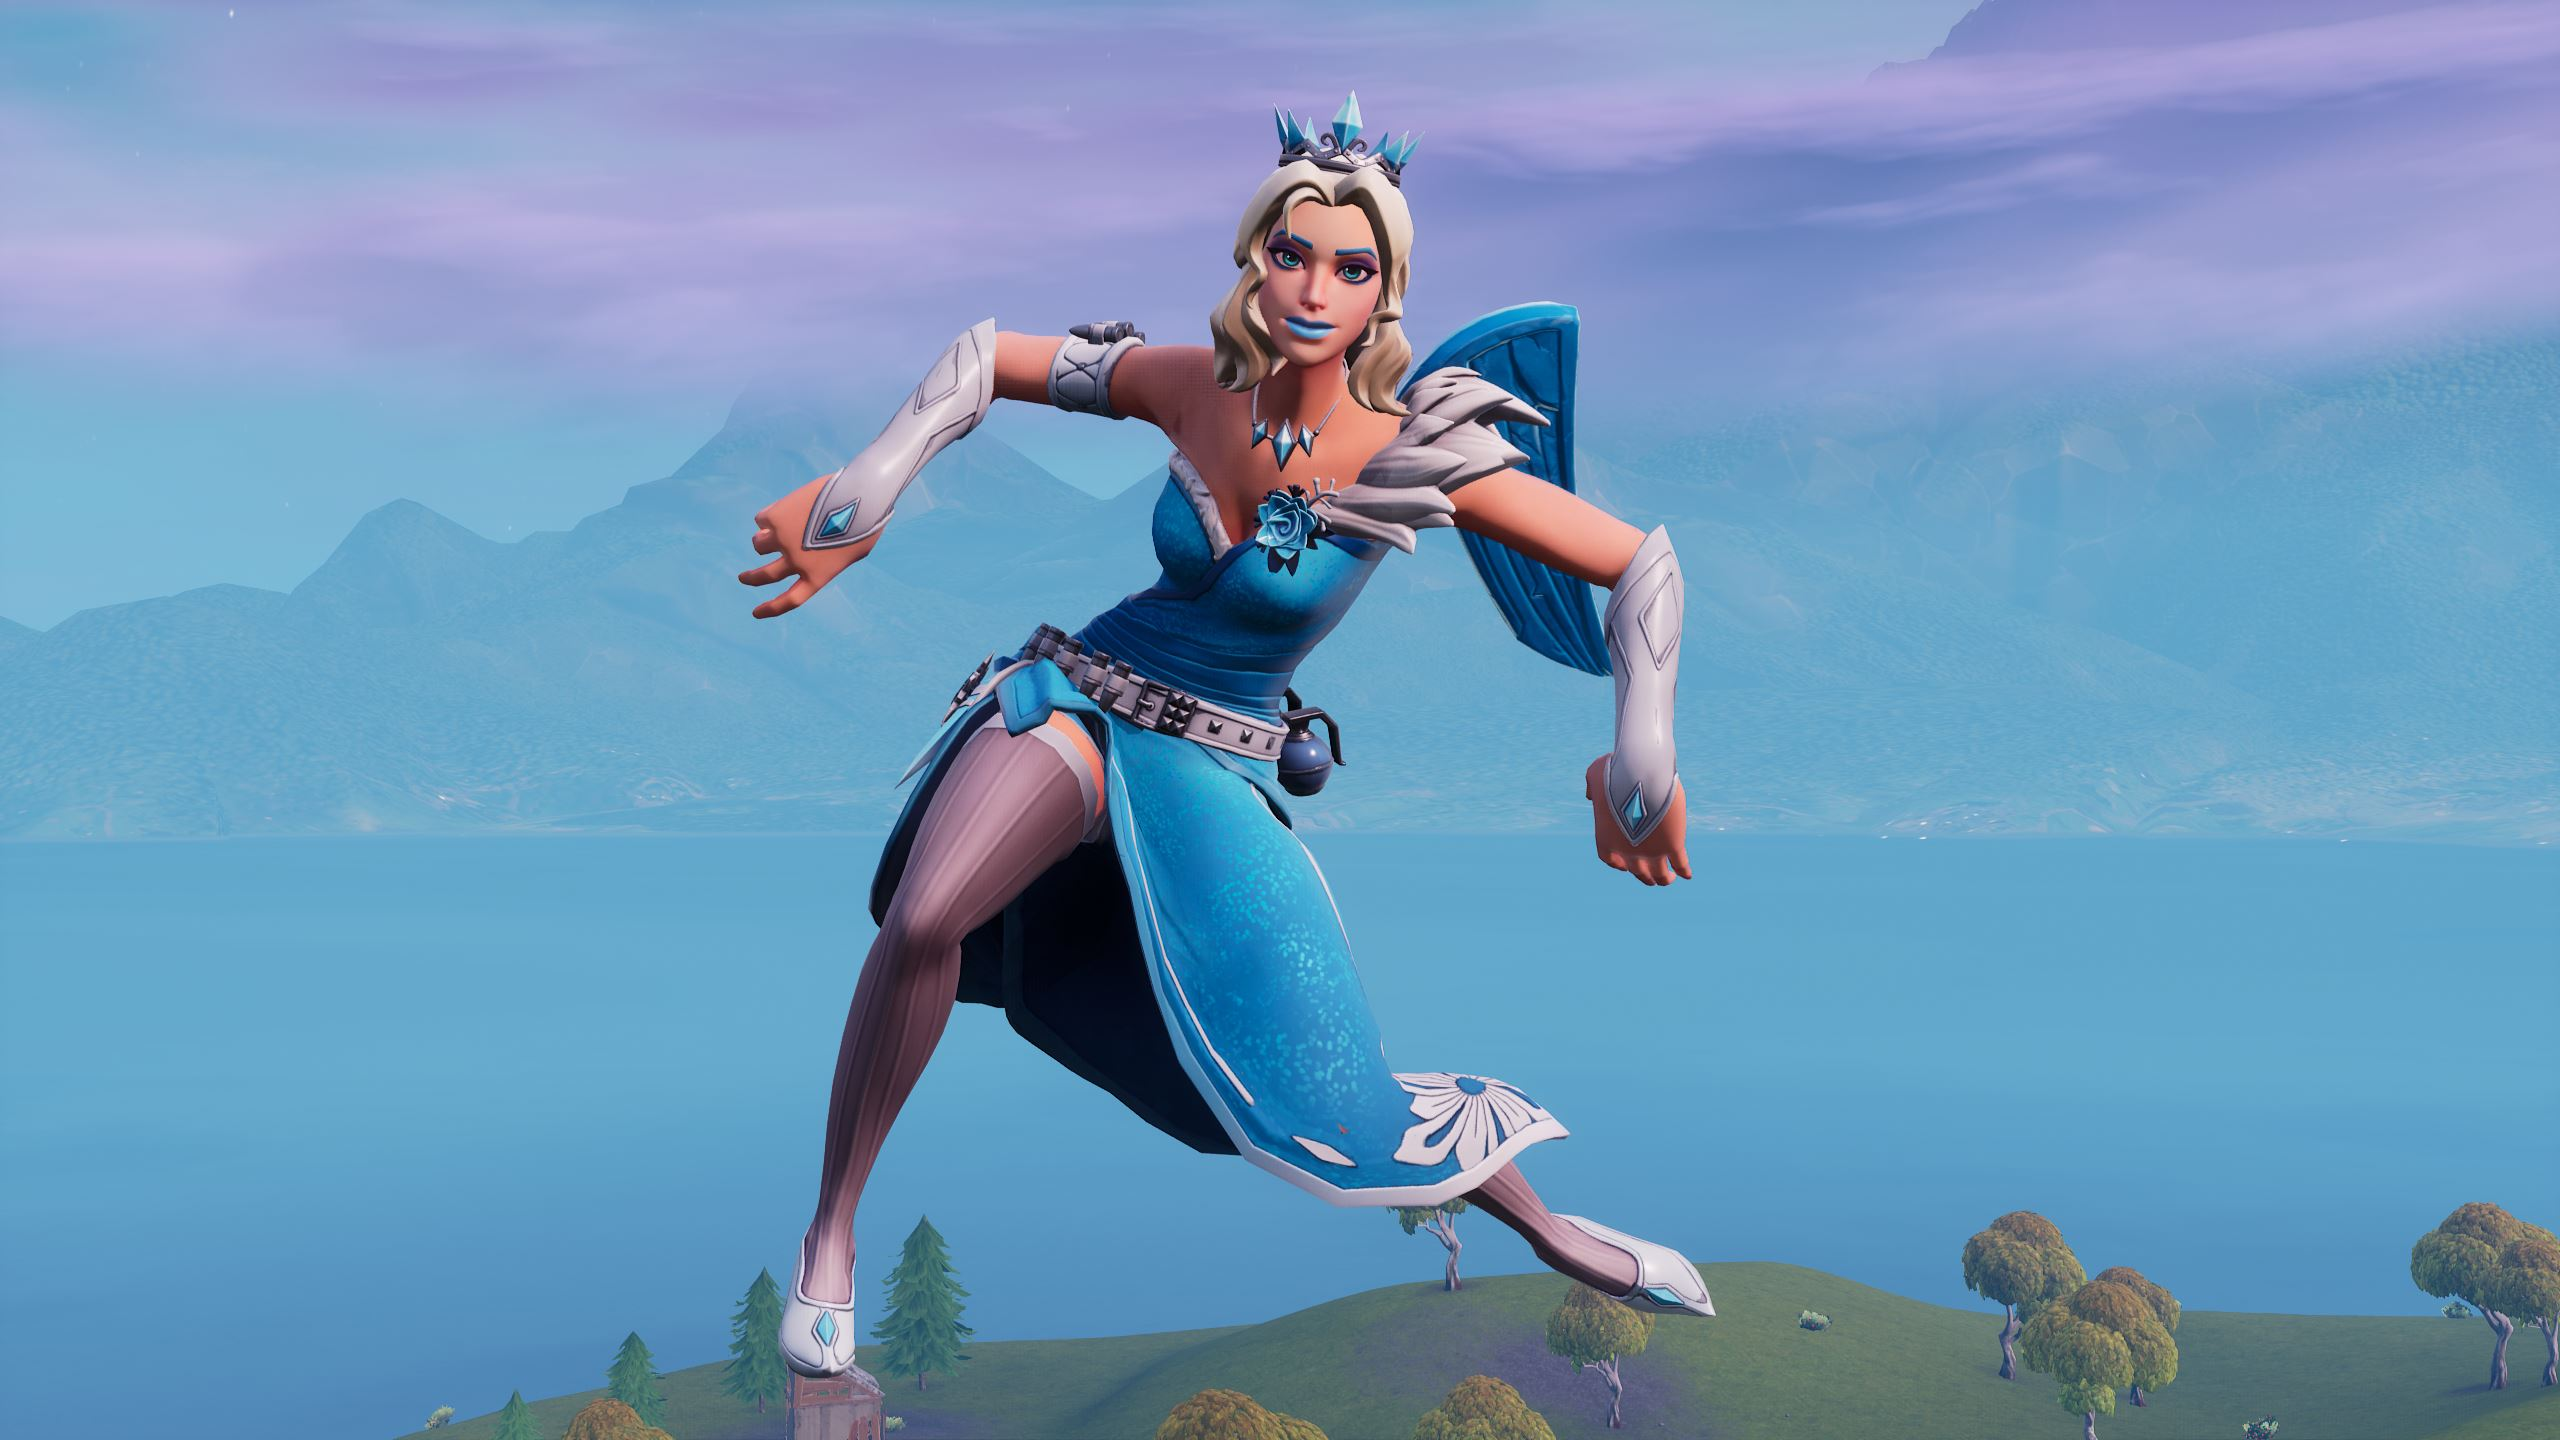 Fortnite Dances That Start With A Fortnite Dance Lawsuits Have Been Dropped But Only For Now Pc Gamer